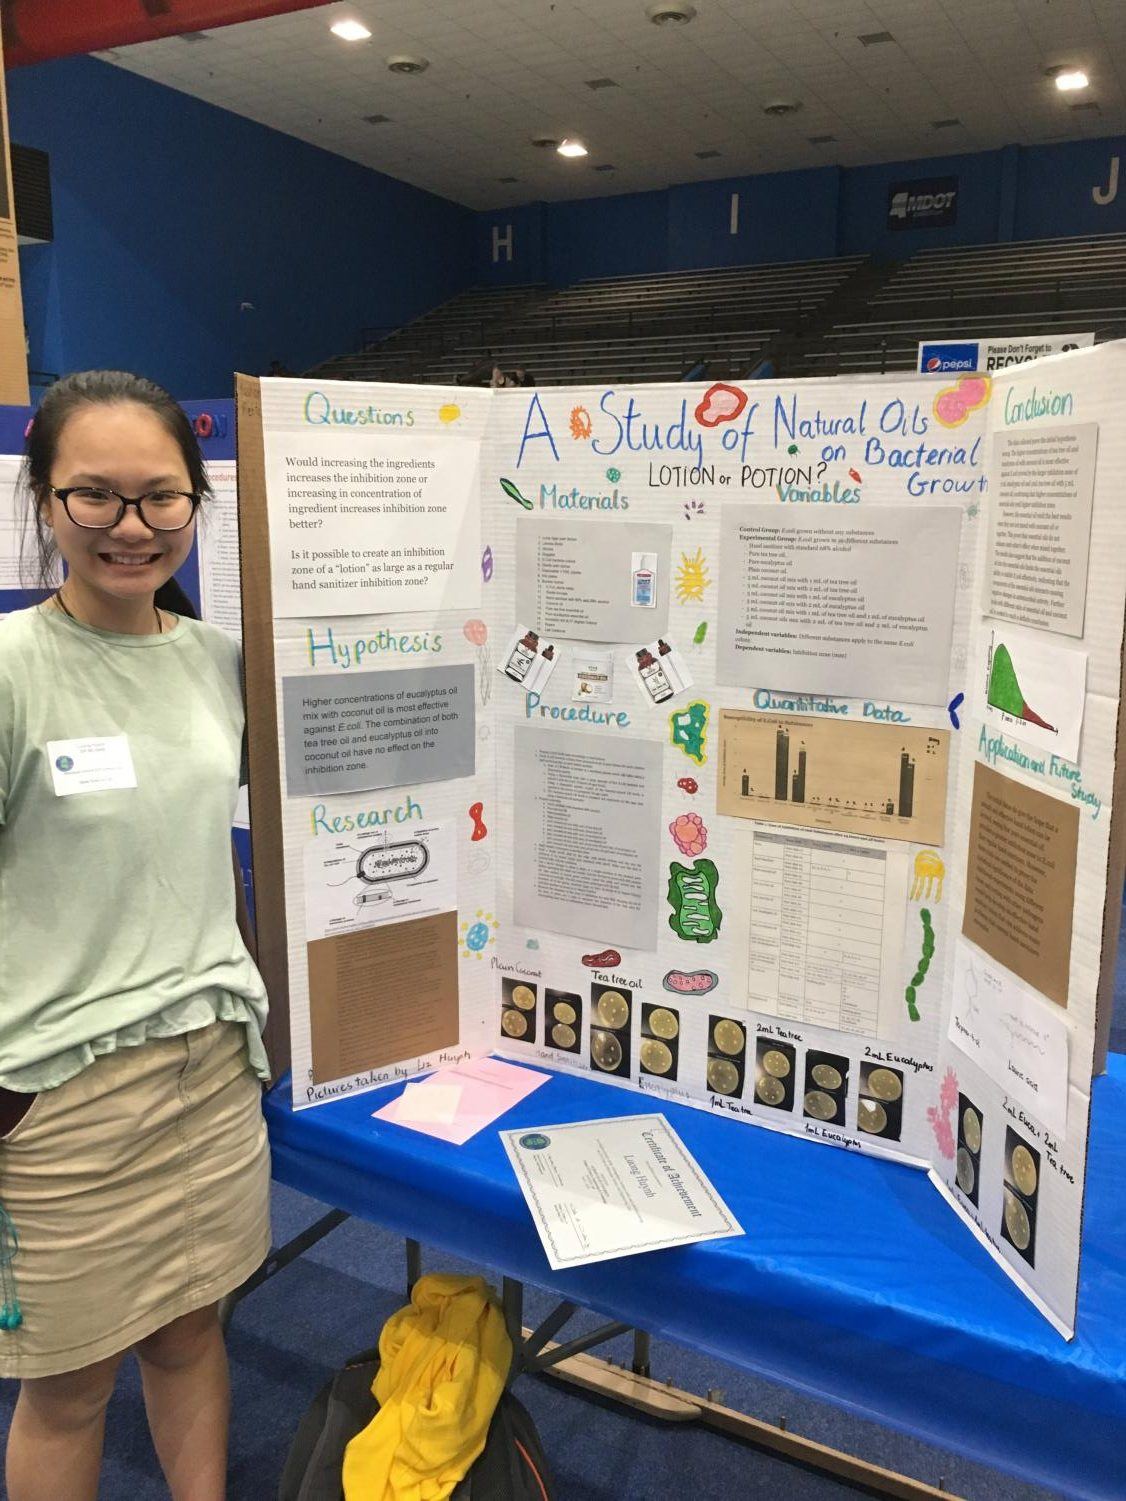 Liz Posing With Her Science Fair Project That She Conducted By Seeing The Effects Of Essential